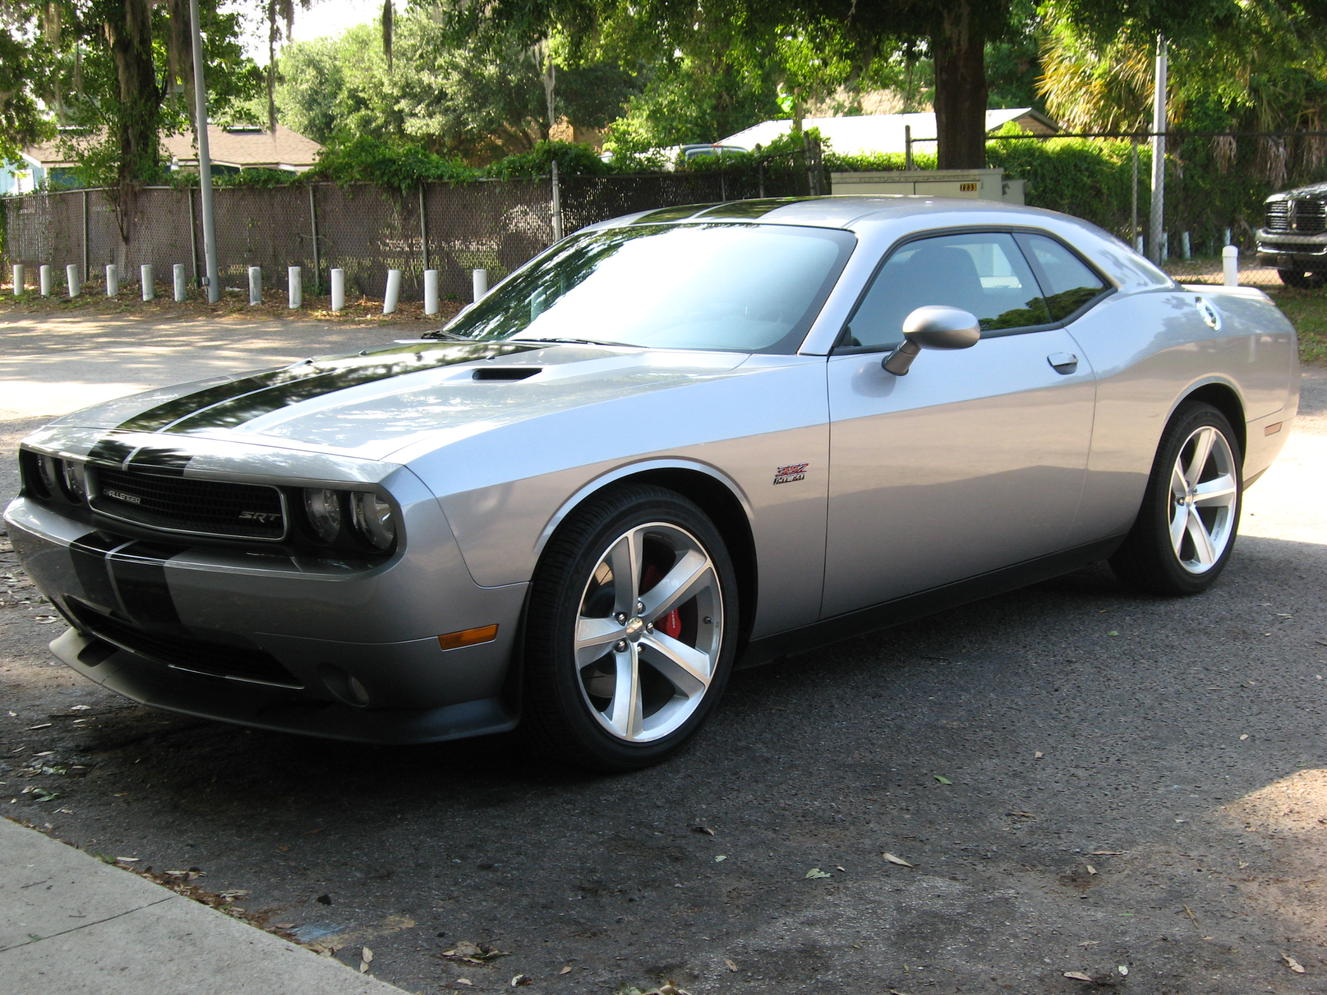 Stock 2011 Dodge Challenger Srt8 392 1 4 Mile Drag Racing Timeslip Specs 0 60 Dragtimes Com